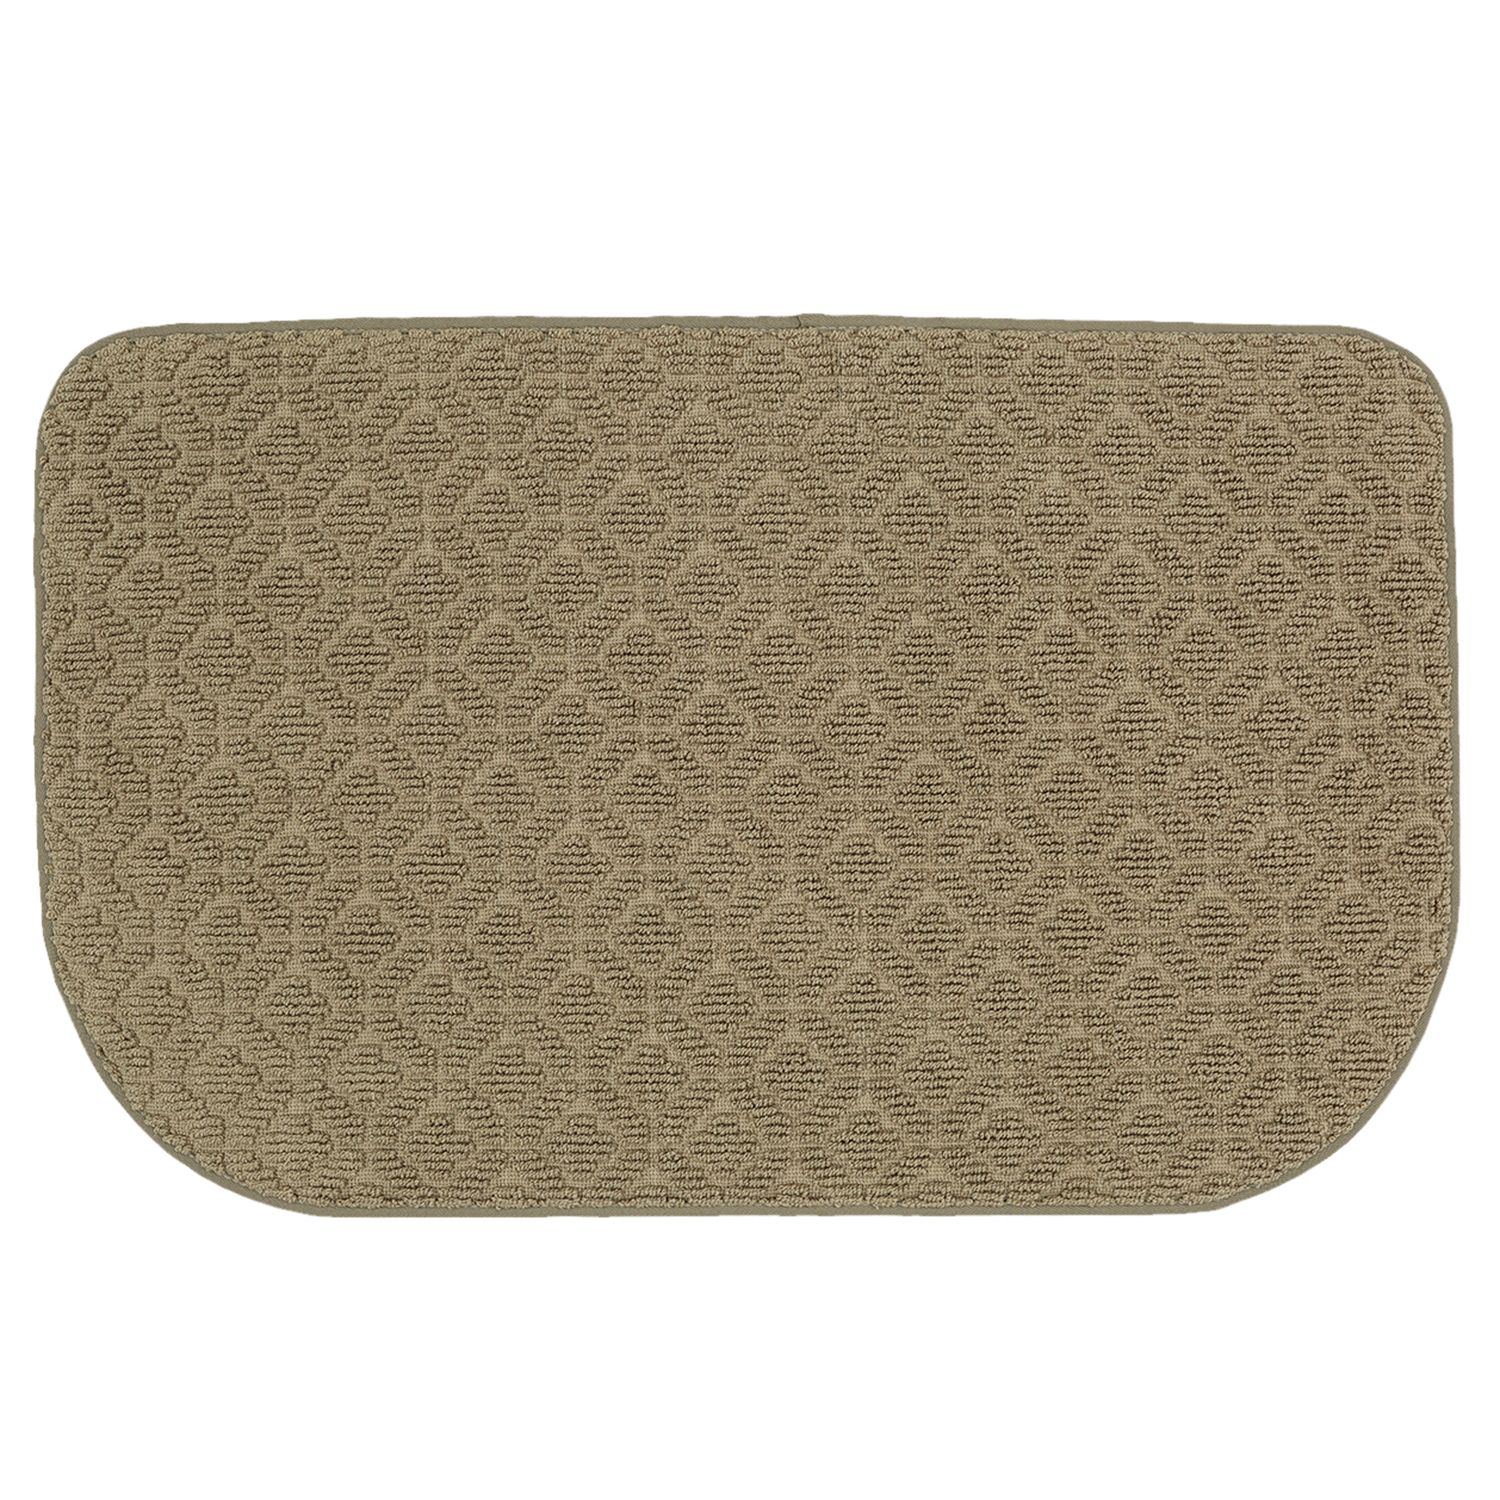 Food Network™ Home Lattice Knit Memory Foam Kitchen Rug   20u0027u0027 ...